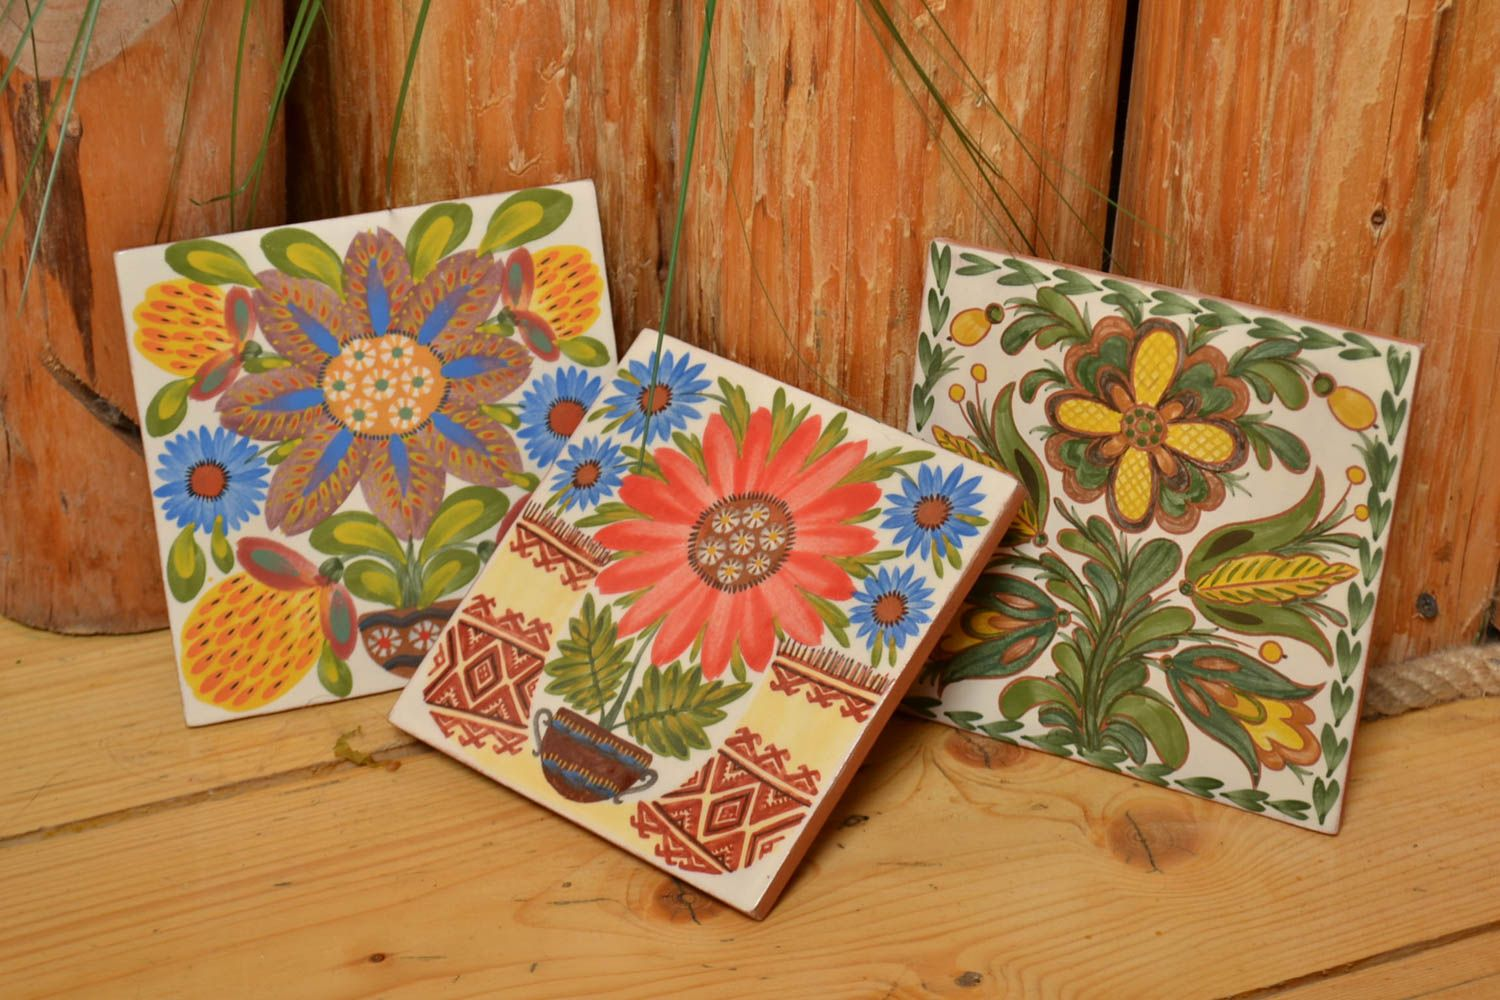 Madeheart ceramic handmade tiles painted with engobes set of 3 decorative handmade tiles ceramic handmade tiles painted with engobes set of 3 pieces with flowers dailygadgetfo Gallery